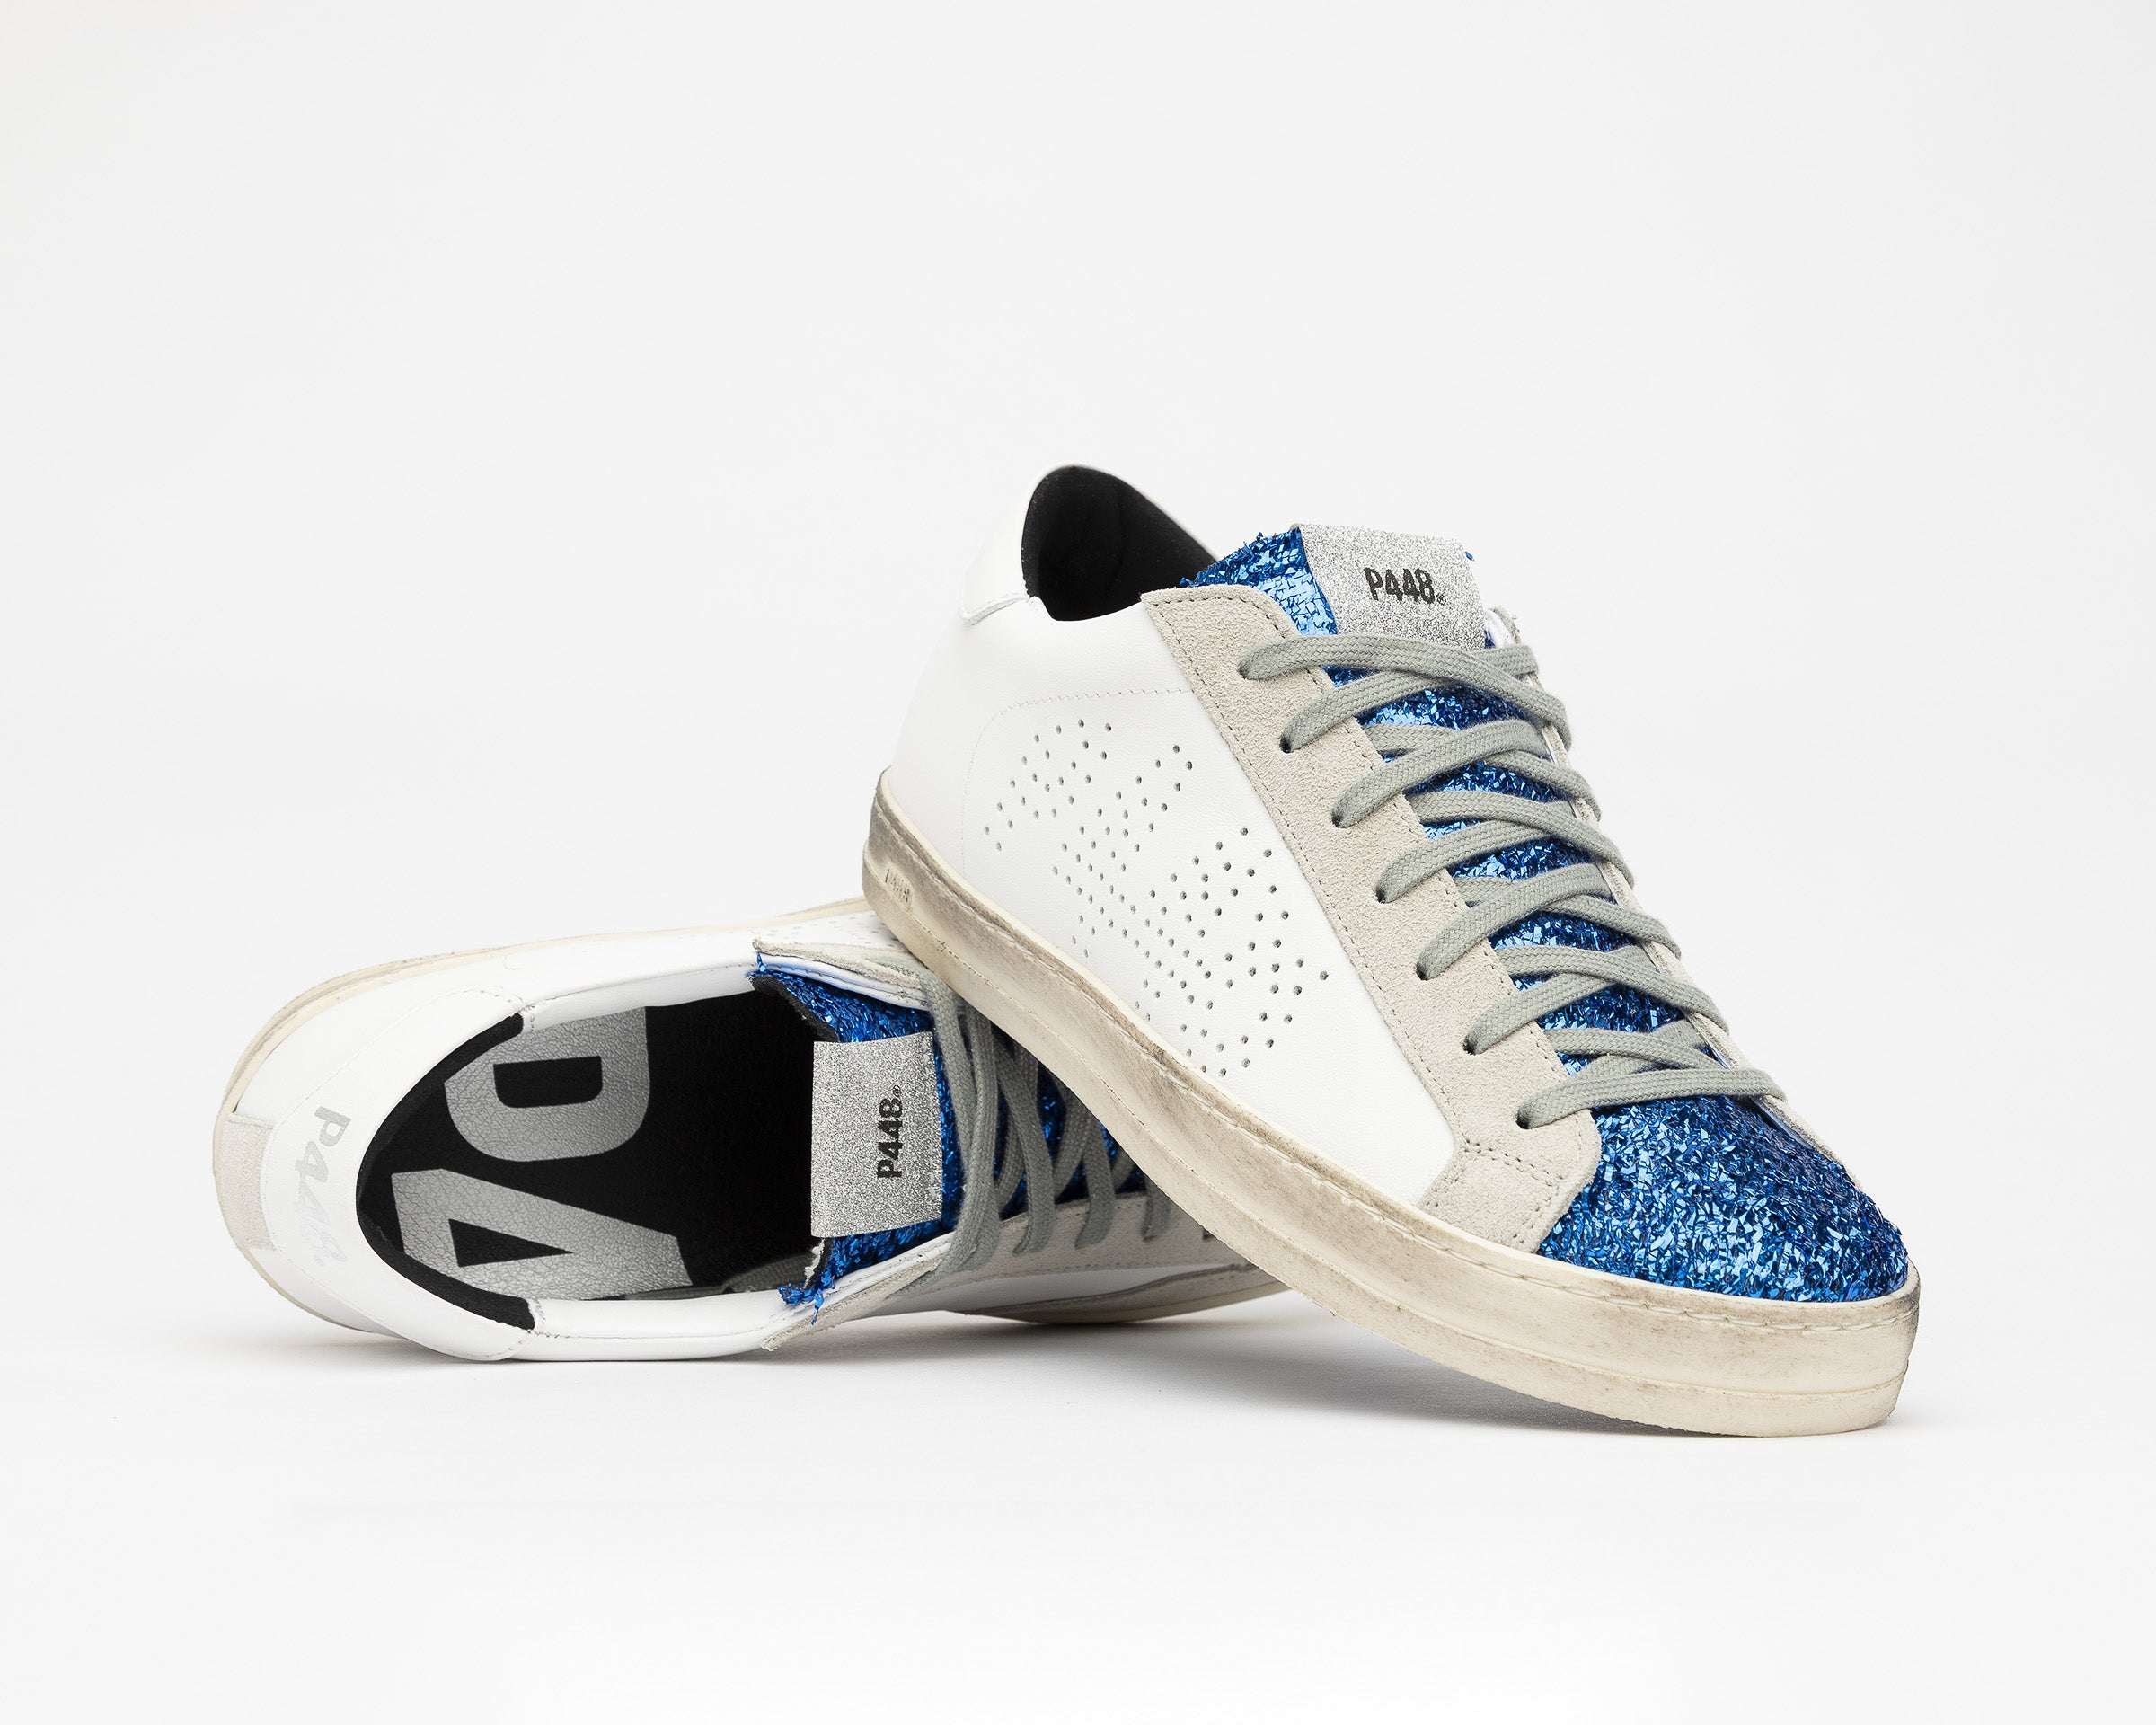 John Low-Top Sneaker in Royal/Lunar - Detail 2